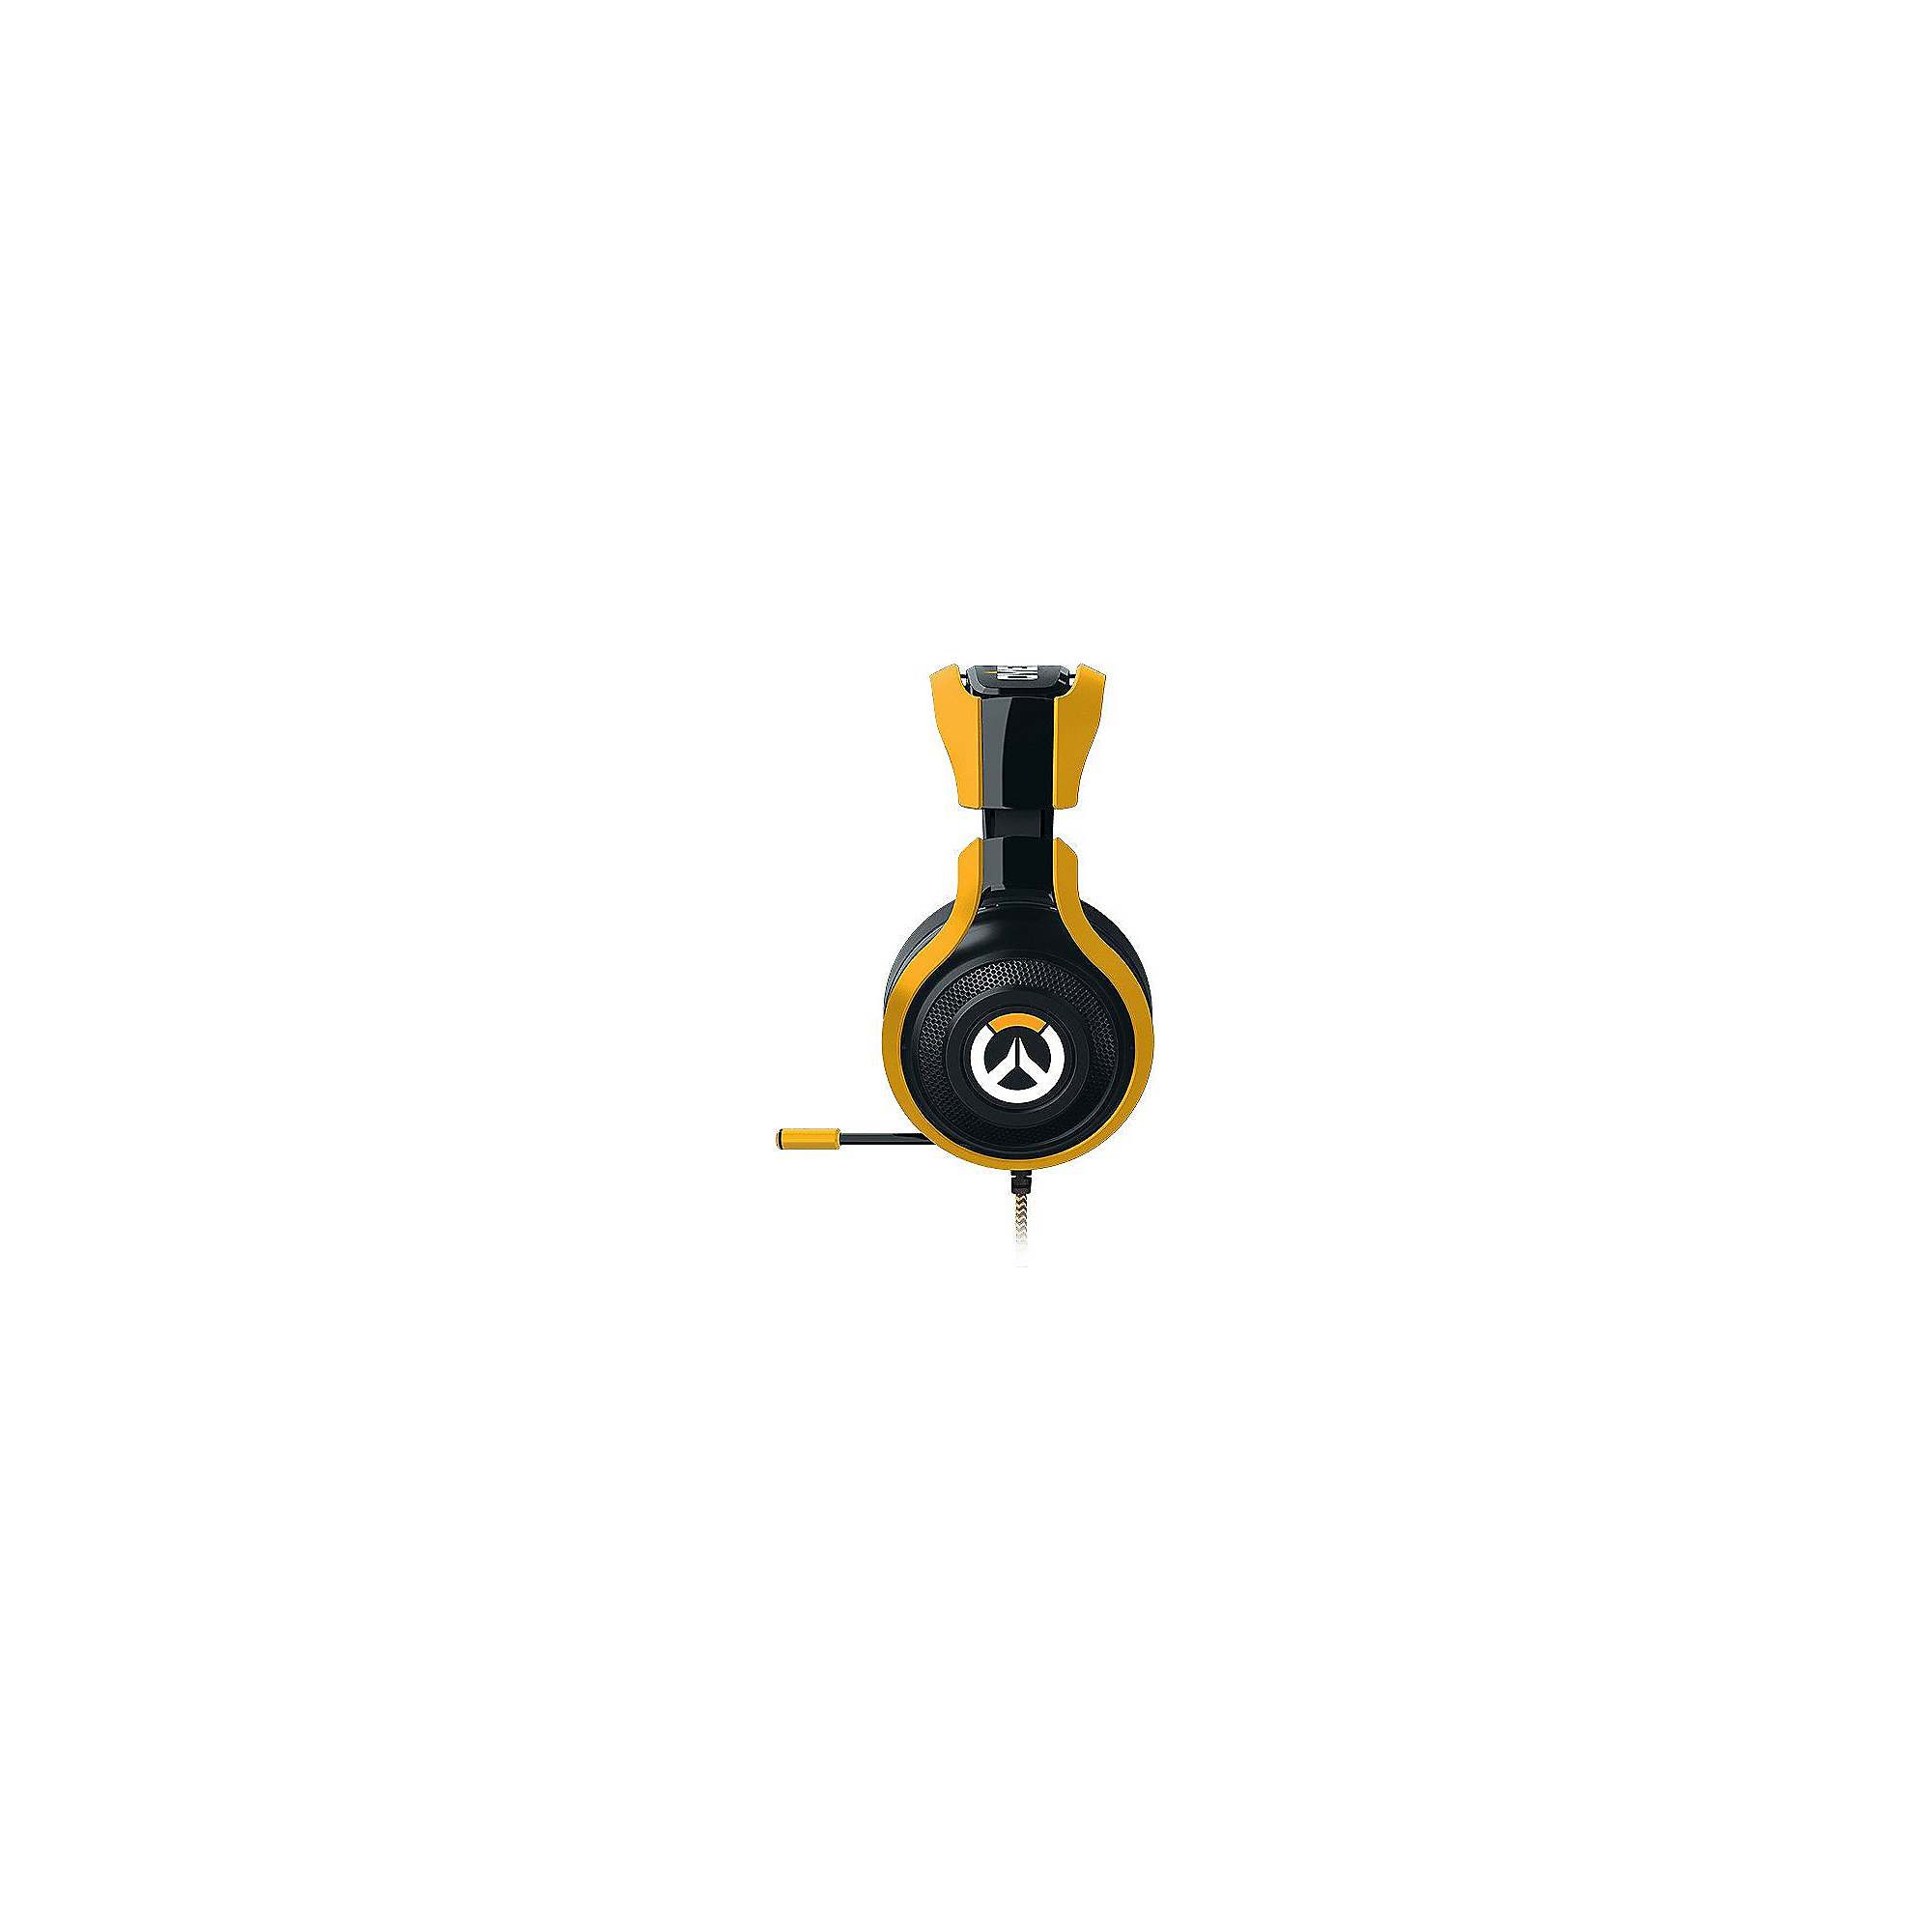 Razer ManO´War kabelgebundenes Gaming Headset Overwatch Editon schwarz / orange